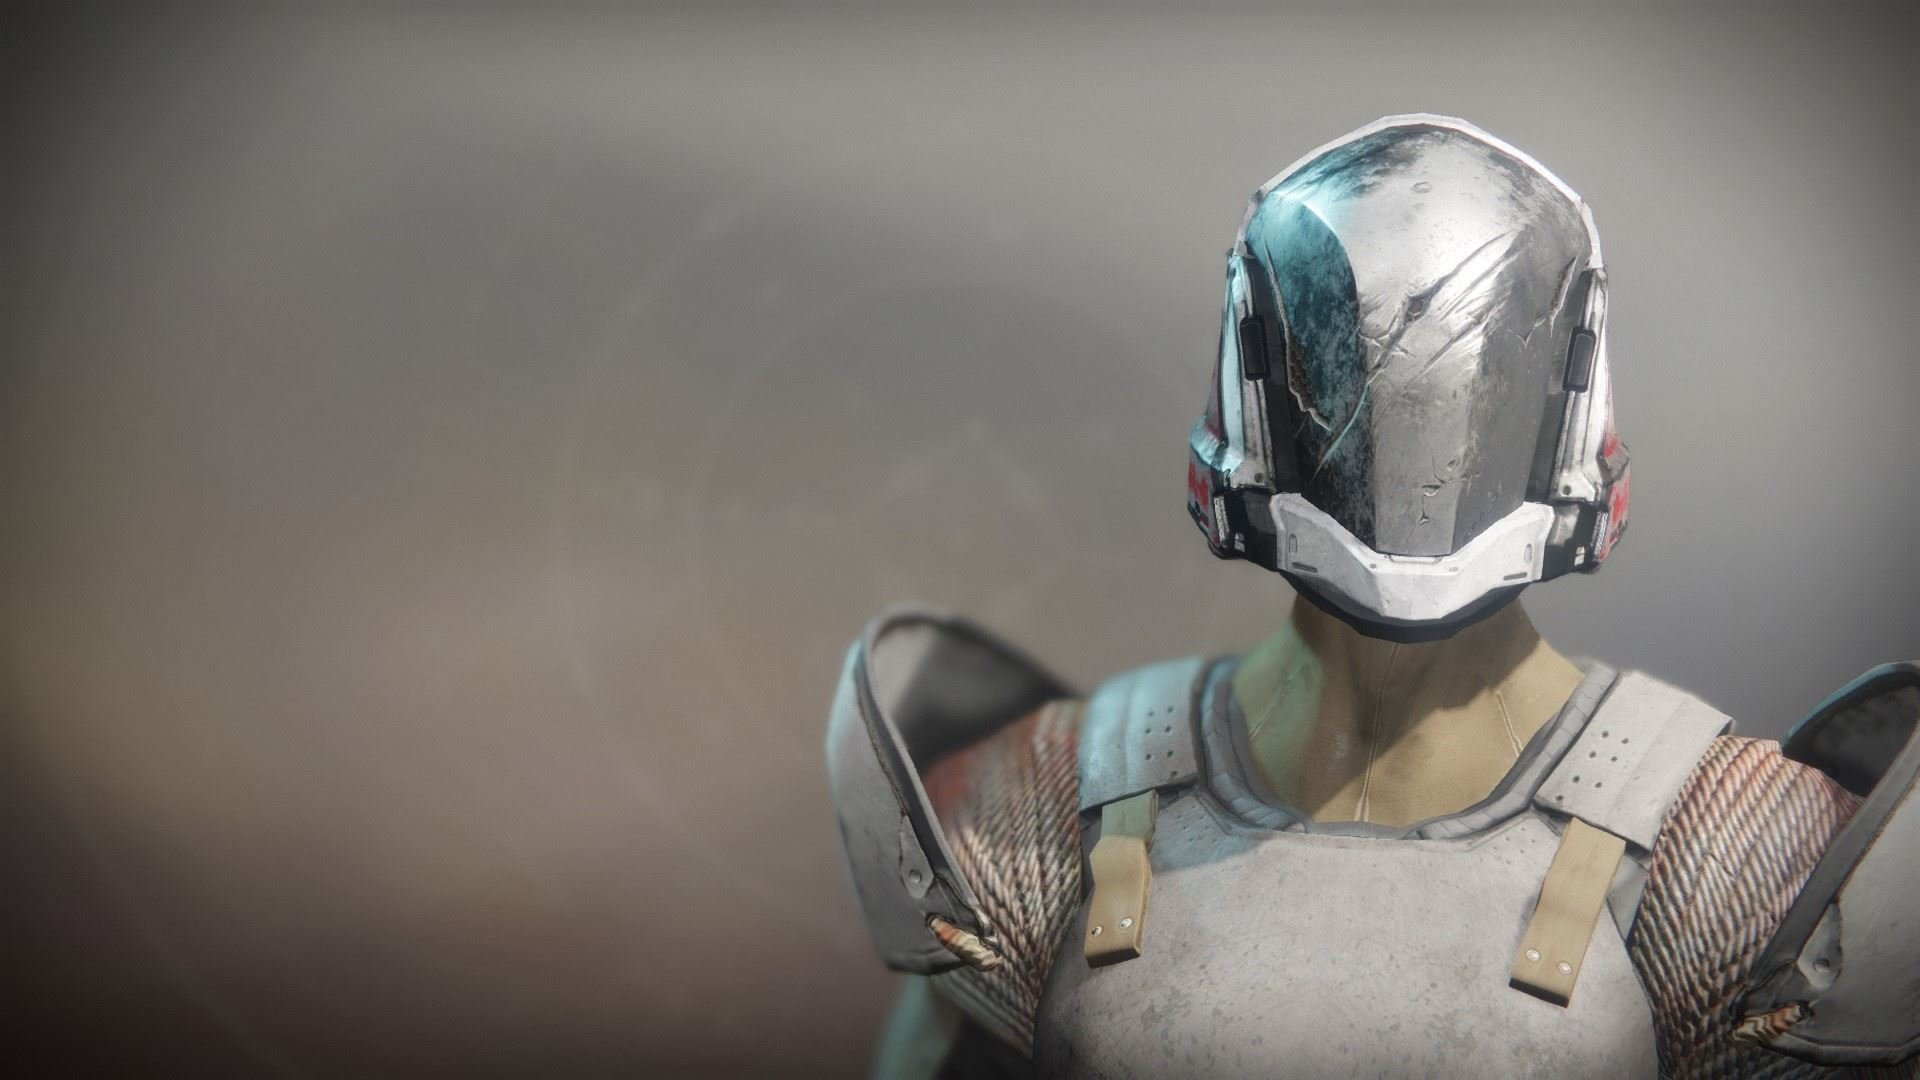 An in-game render of the Solstice Helm (Scorched).